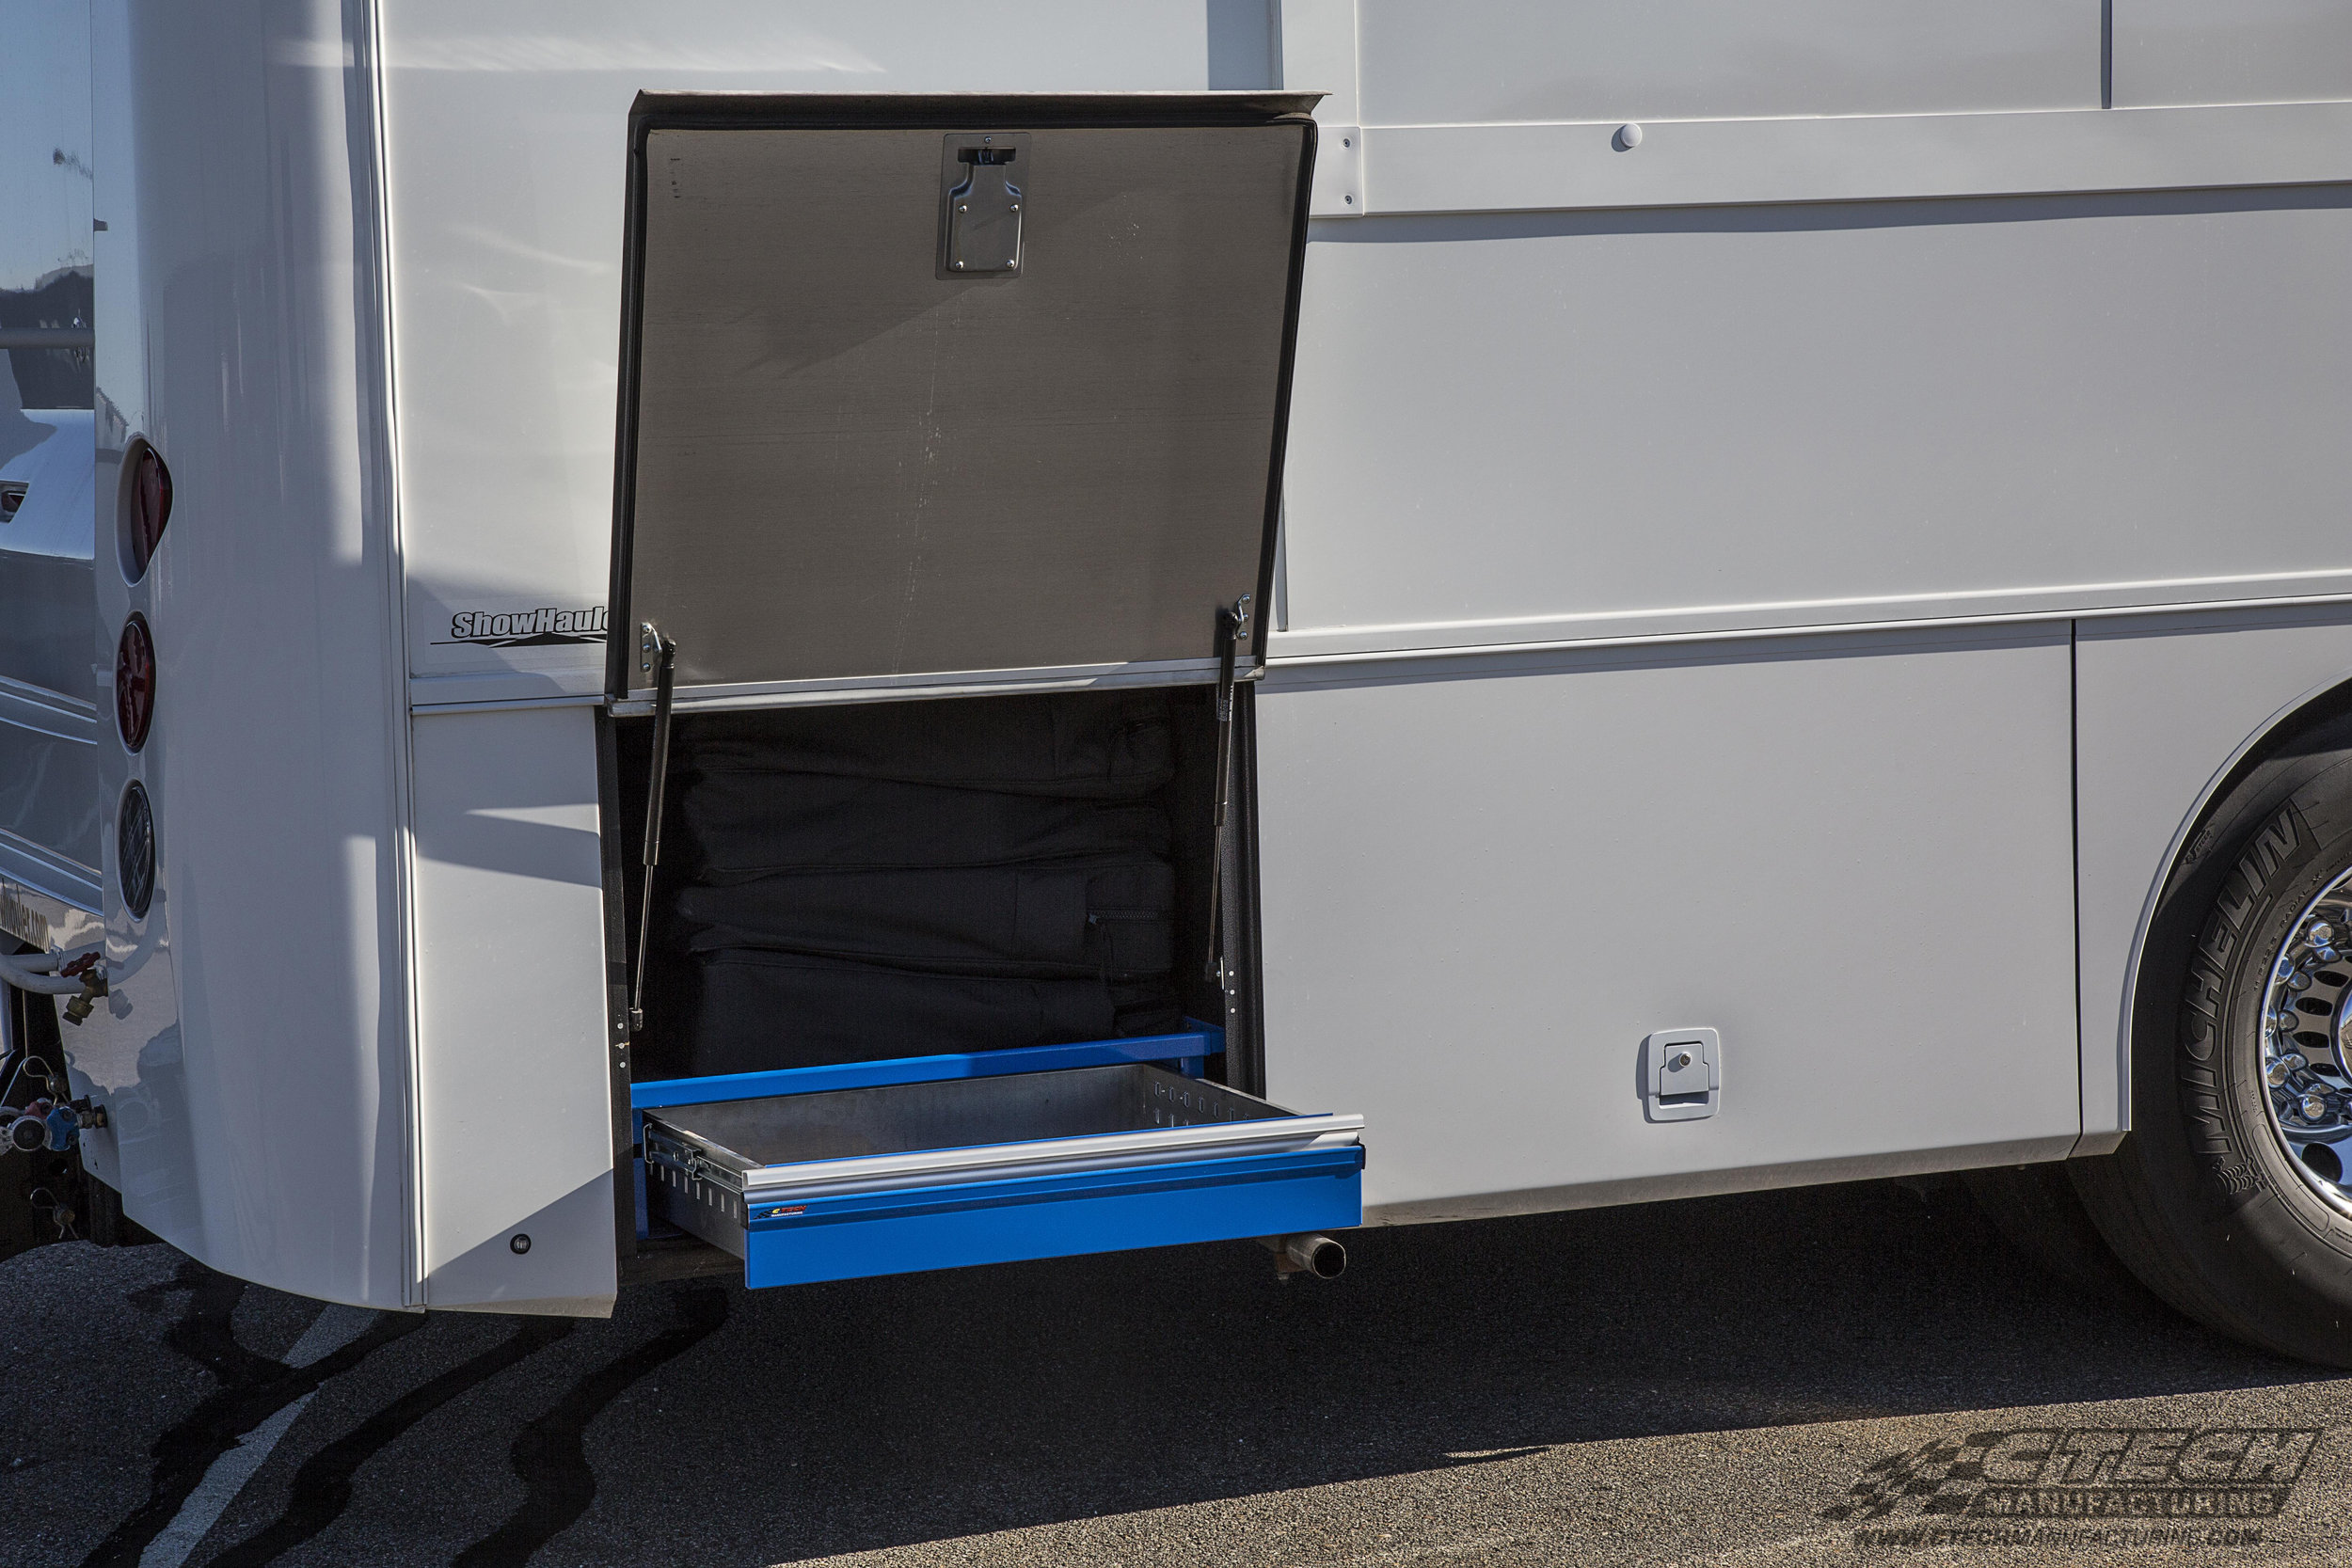 Lower compartment storage on an RV can be a difficult place to organize and access, until now! CTech drawer inserts make every inch of that storage bay accessible and secure!